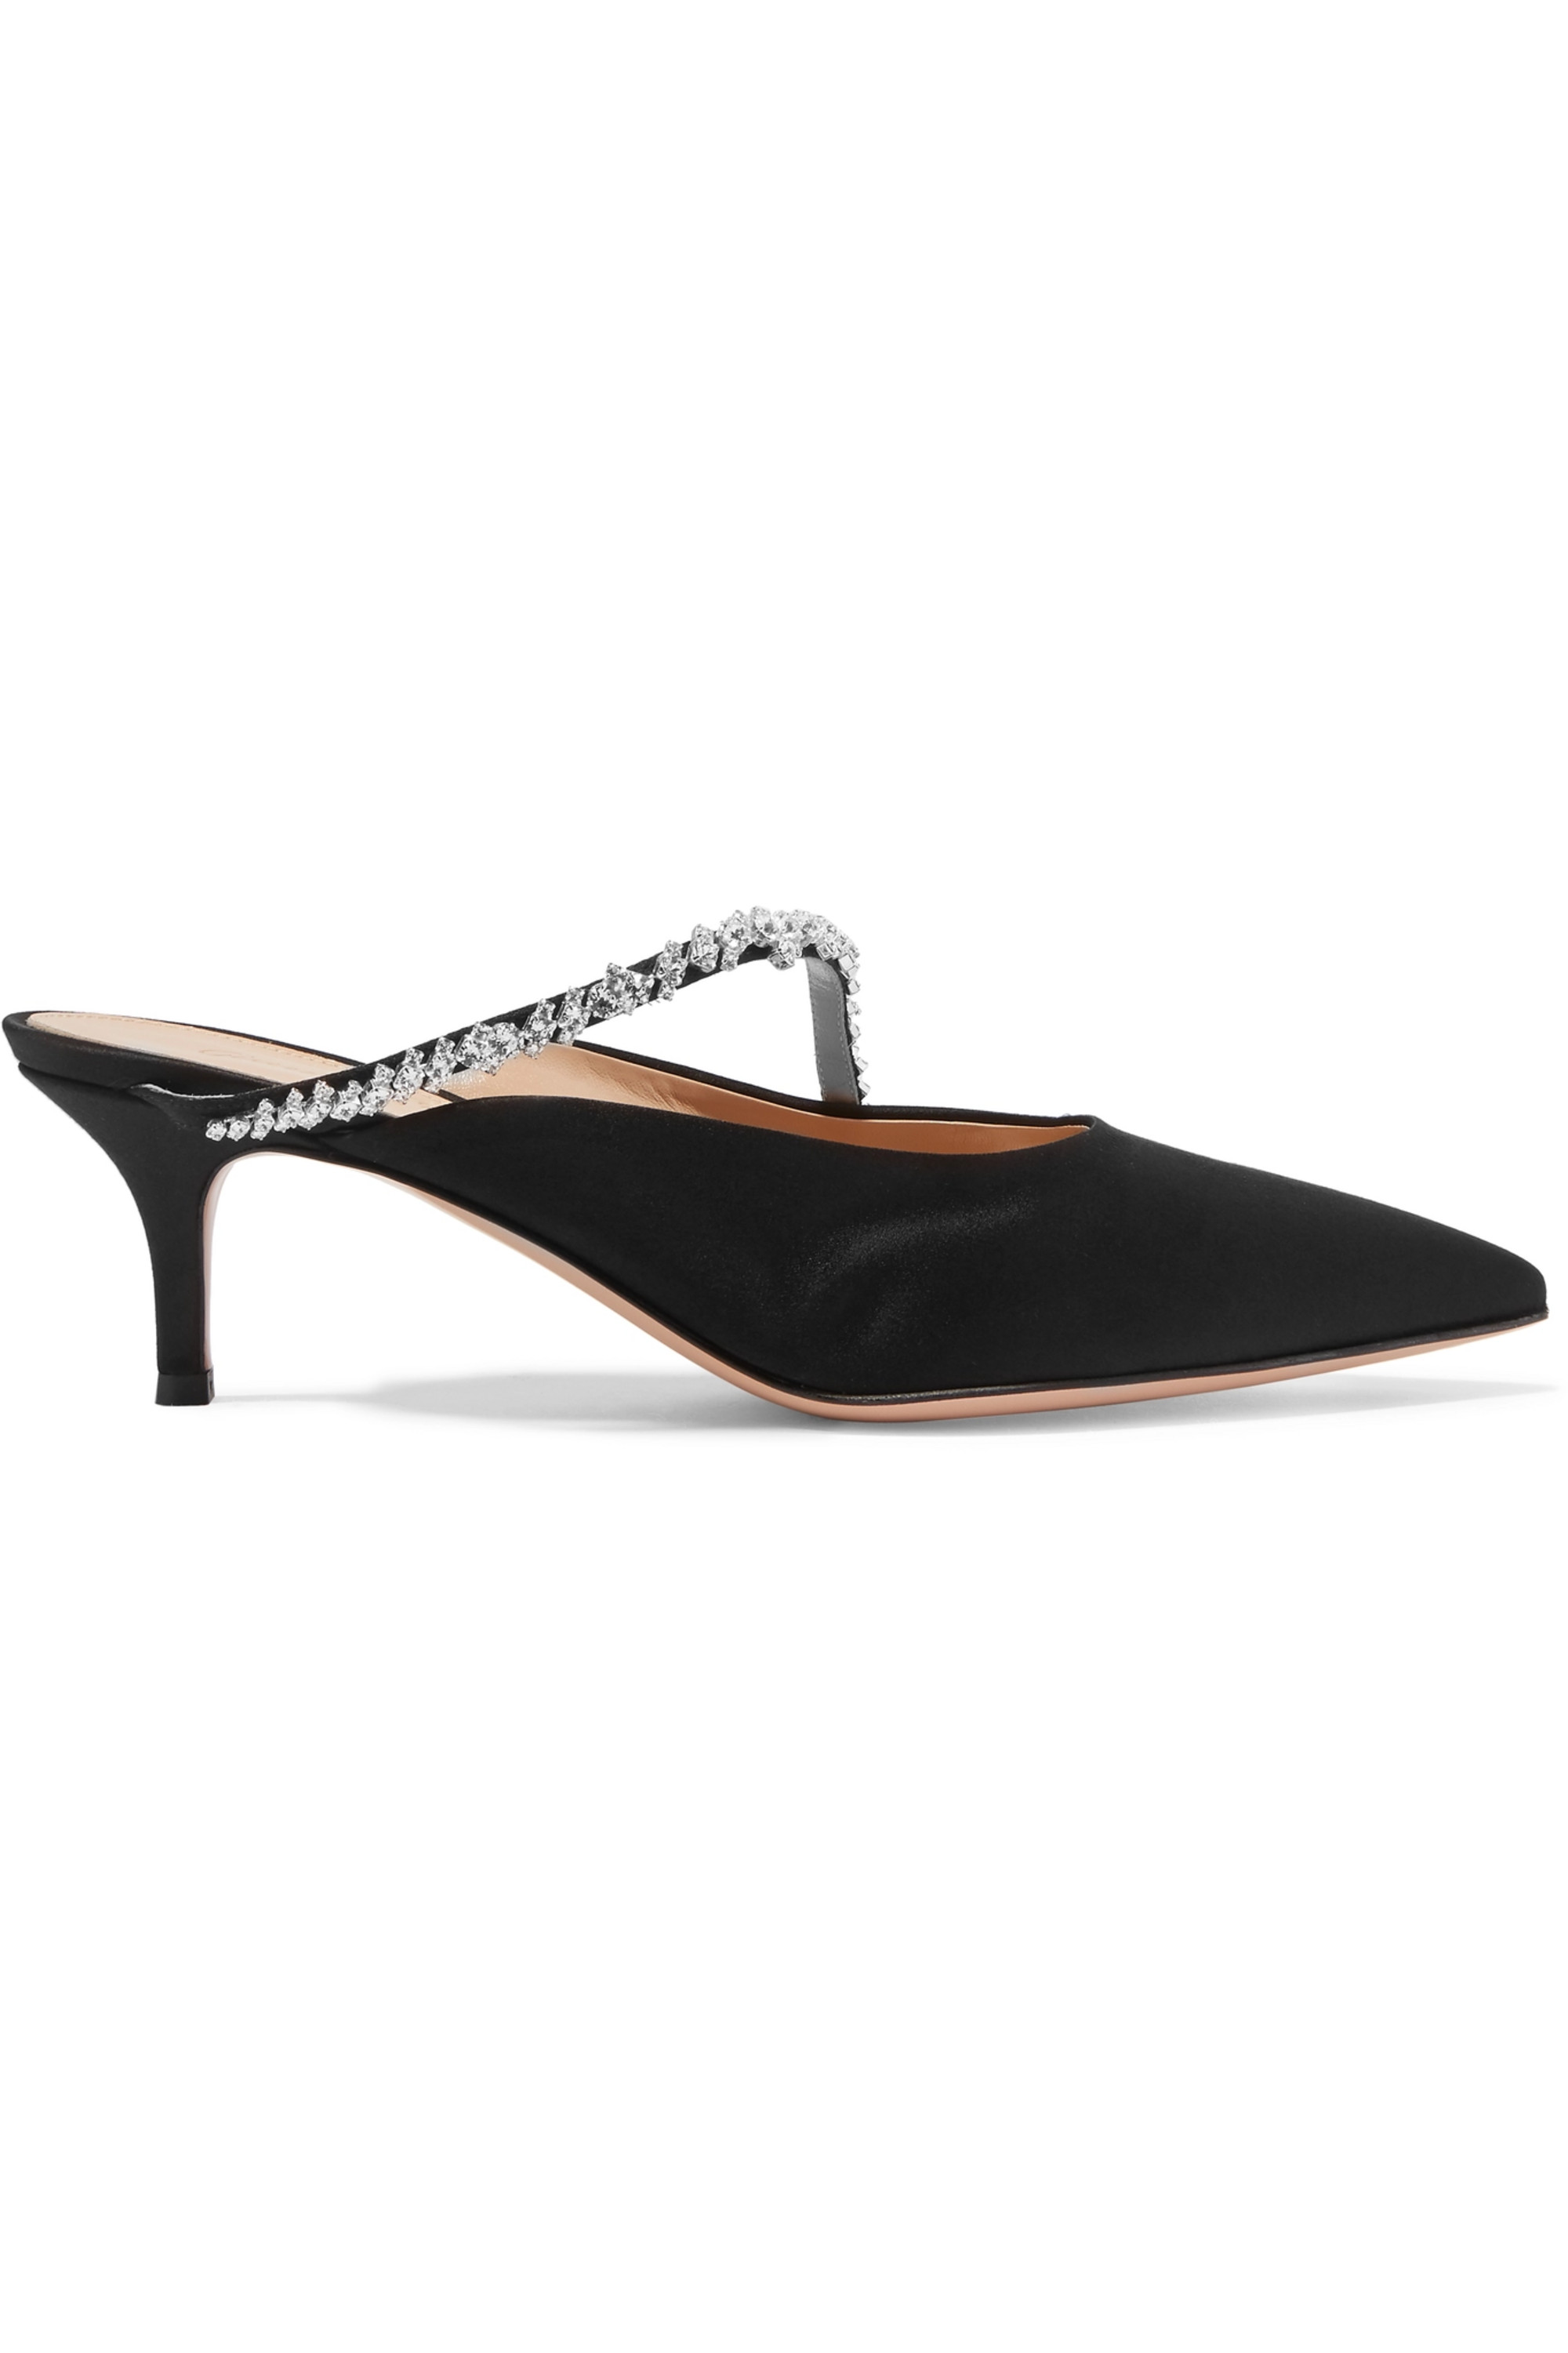 Gianvito Rossi 55 crystal-embellished satin mules